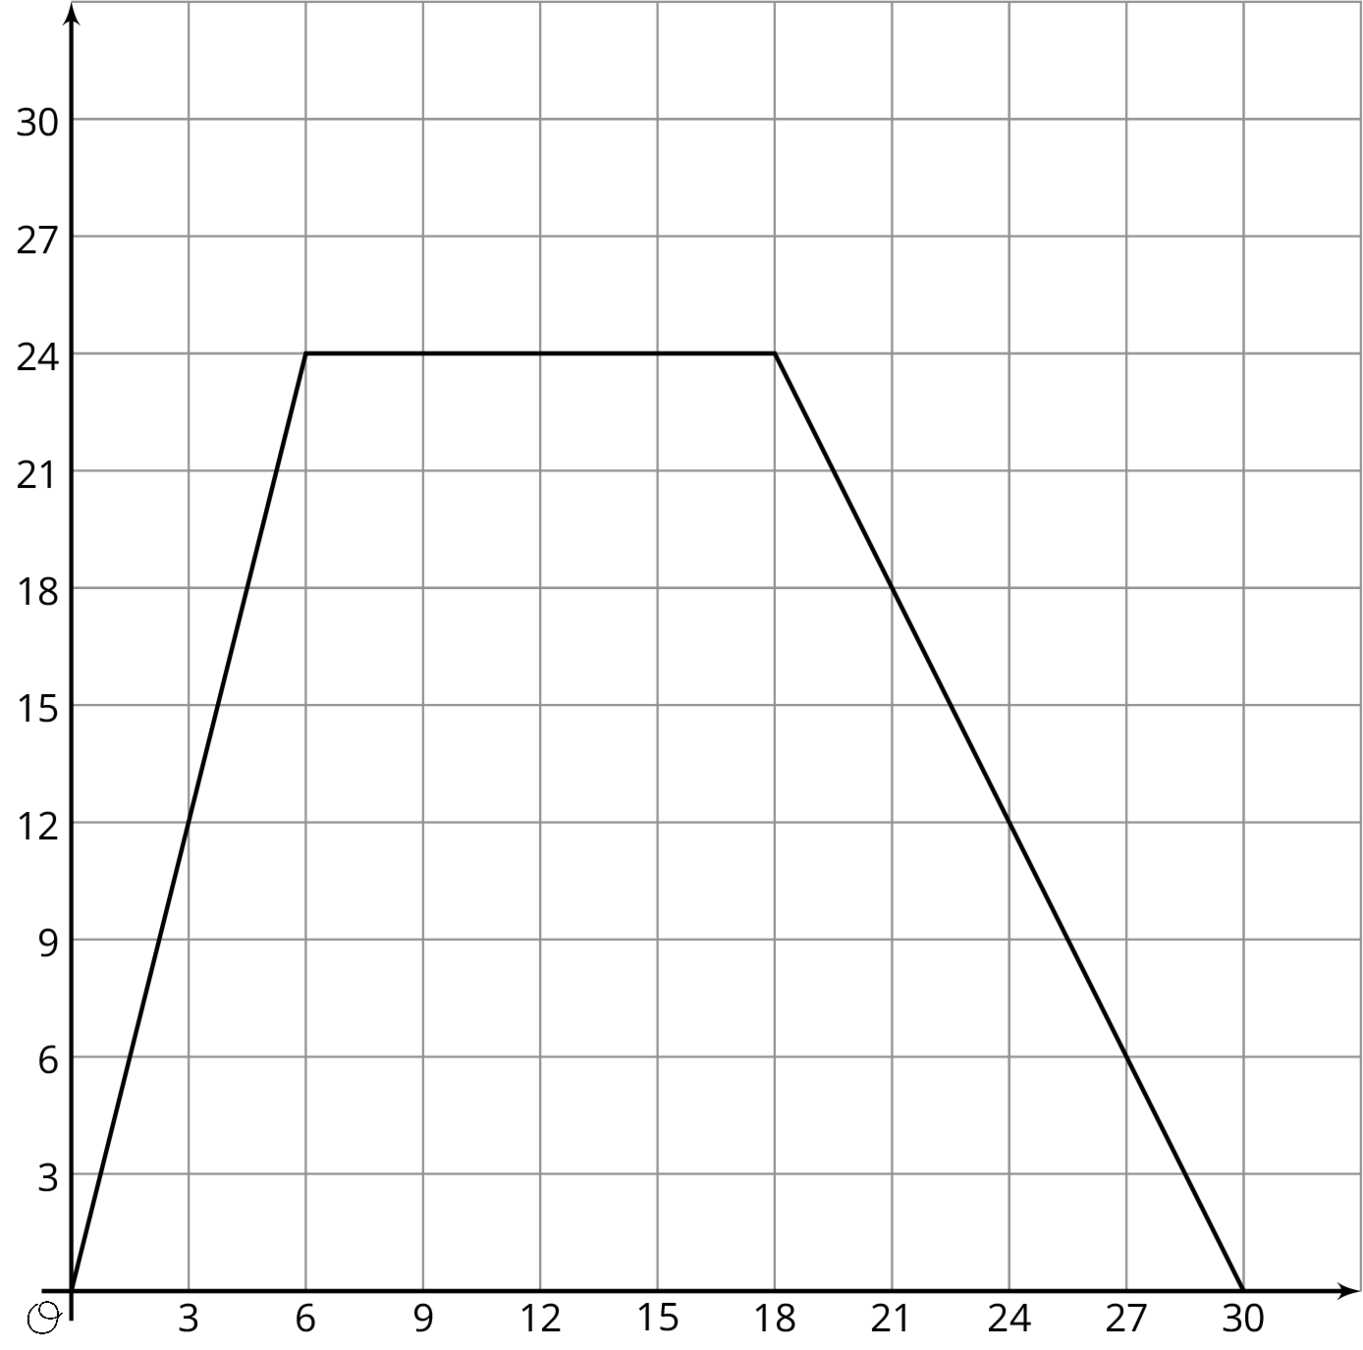 A graph of three connected line segments on the coordinate plane. The numbers 0 through 30, in increments of 3 are indicated on both the horizontal and vertical axes. The first line segment begins at the origin and moves steadily upward and to the right, passing through the point 3 comma 12 and ends at the point 6 comma 24. The second line begins where the first line segment ends, moves horizontally and to the right, ending at the point 18 comma 24. The third line segment begins where the second line segment ends, moves steadily downward and to the right, passing through the point 21 comma 18 and ends at the point 30 comma 0.